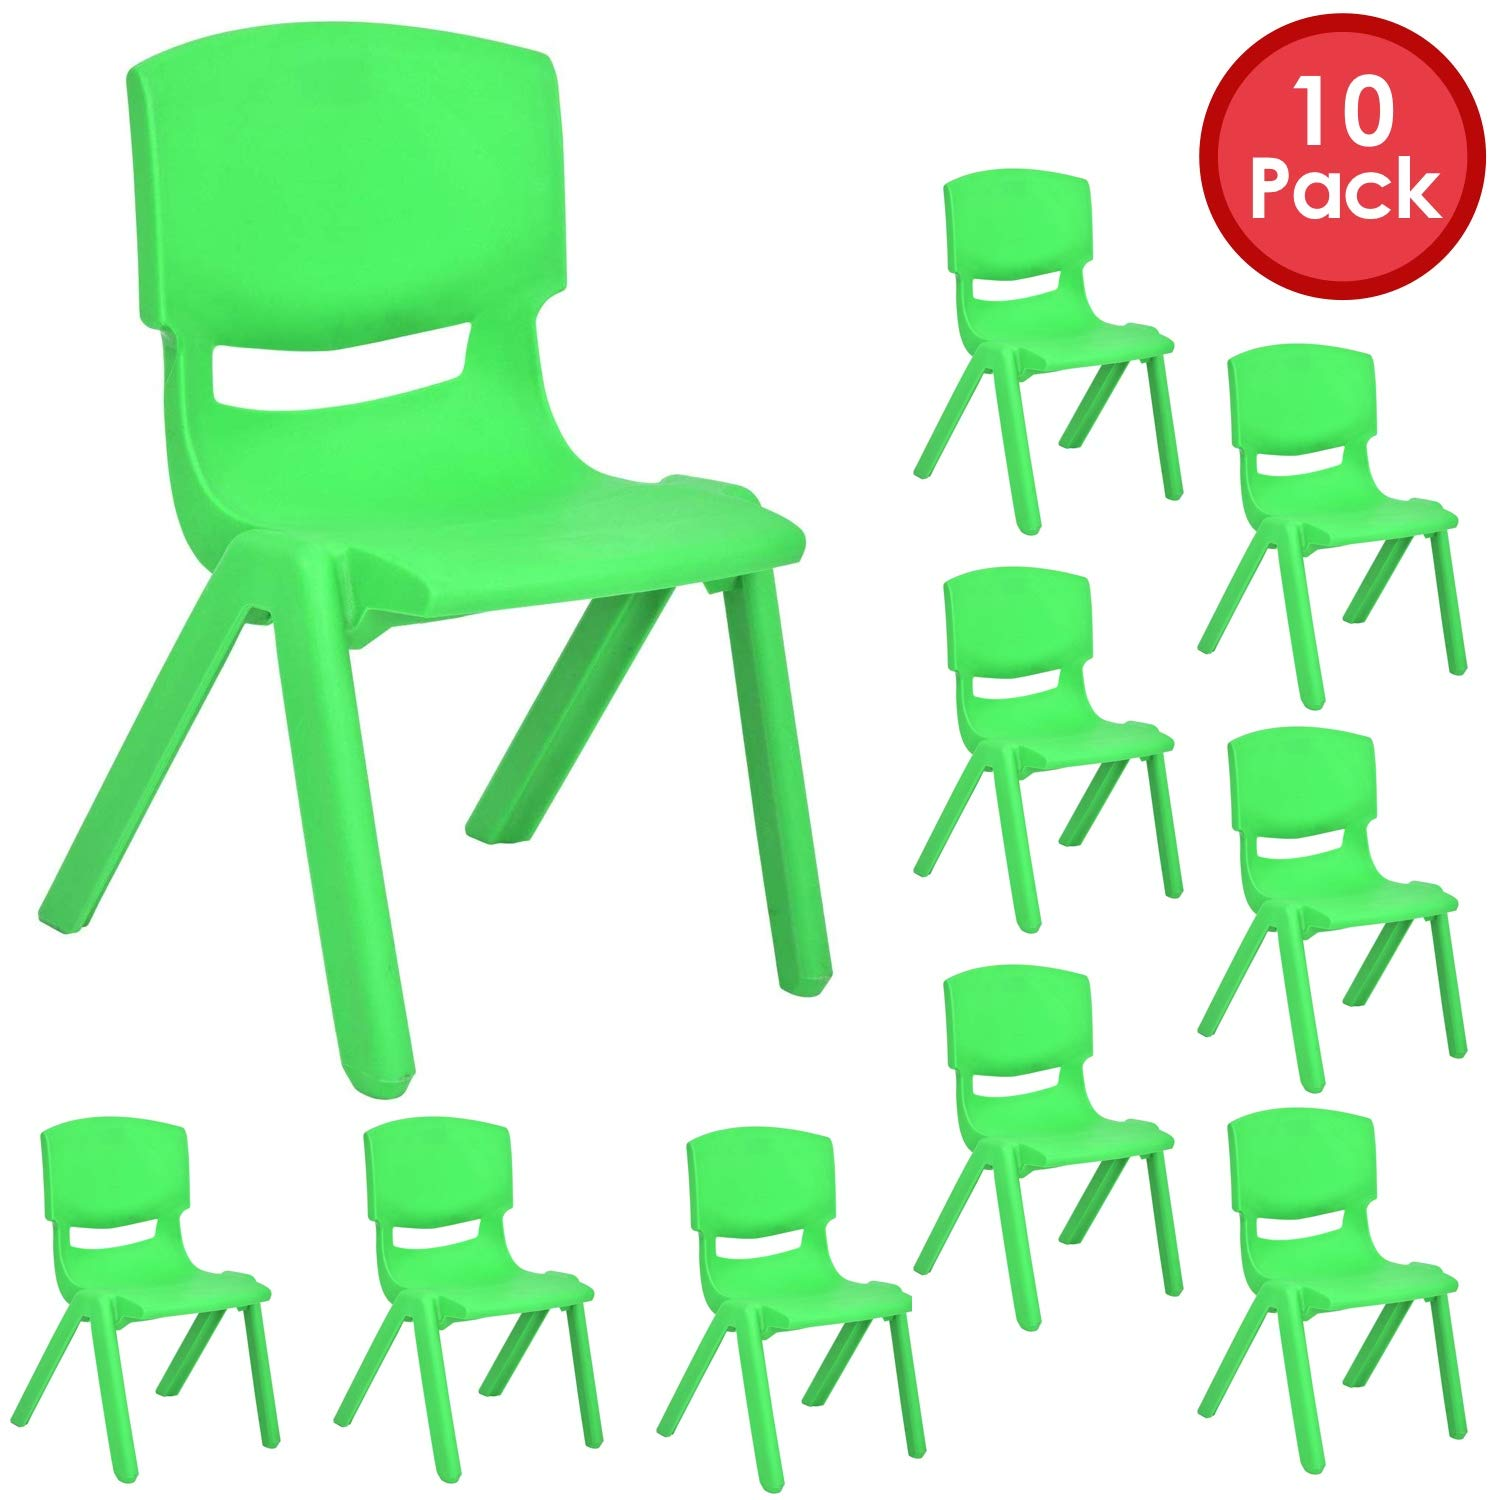 JOON Stackable Plastic Kids Learning Chairs, 20.8x12.5 Inches, The Perfect Chair Sets for Playrooms, Schools, Daycares and Home, Colorful Design (Green, 10 Pack)